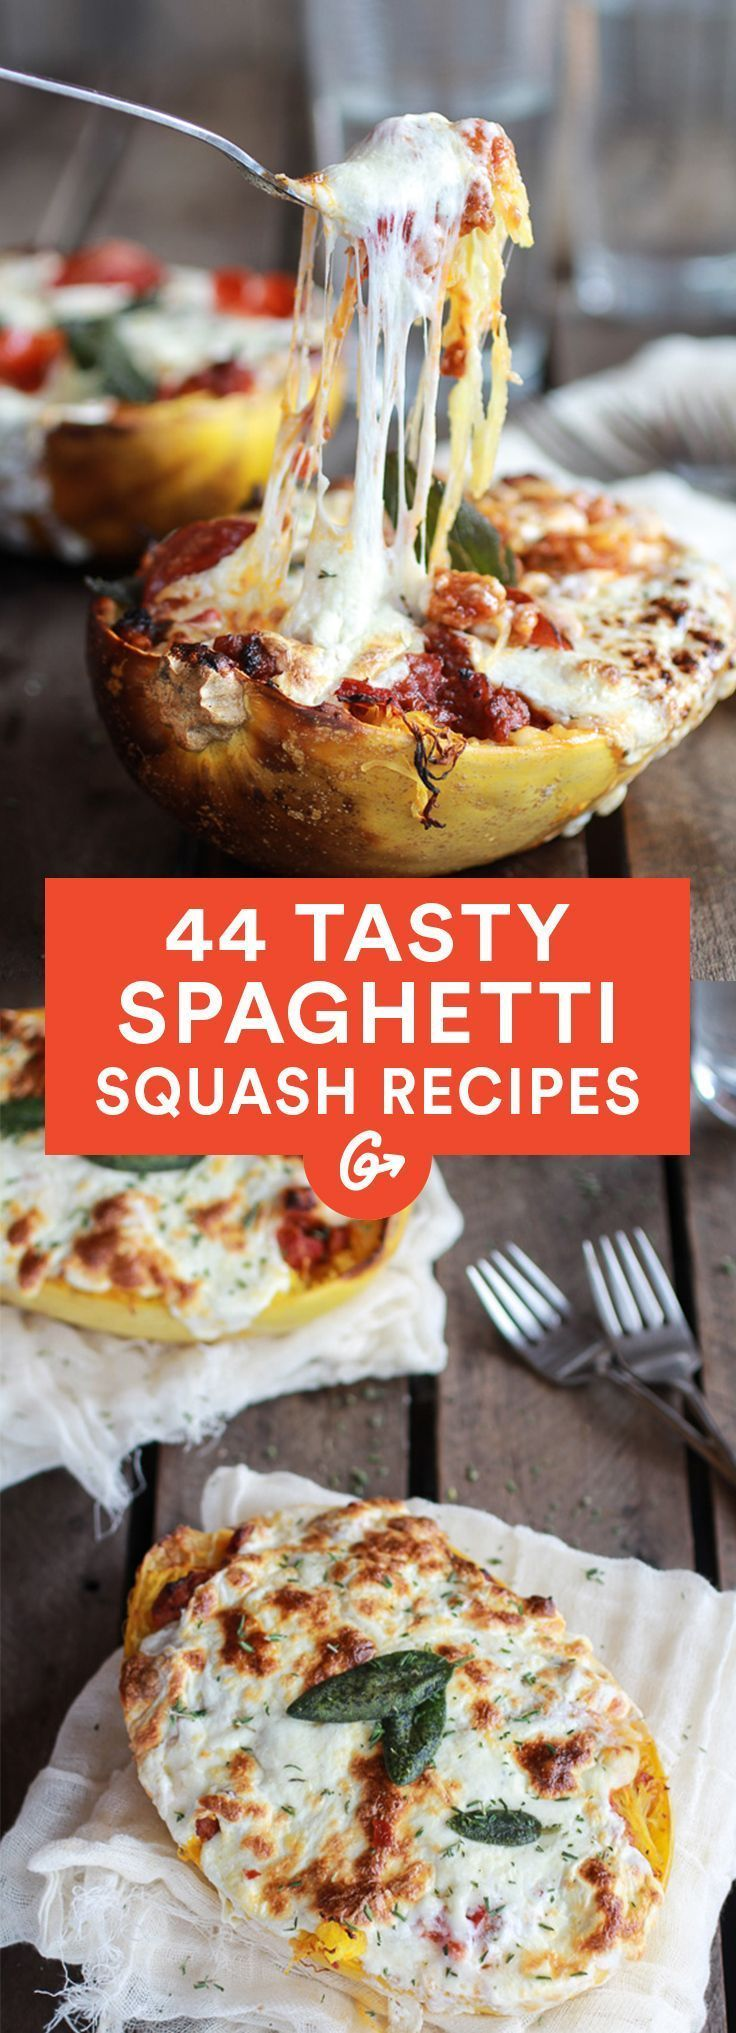 Mouthwatering Spaghetti Squash Recipes